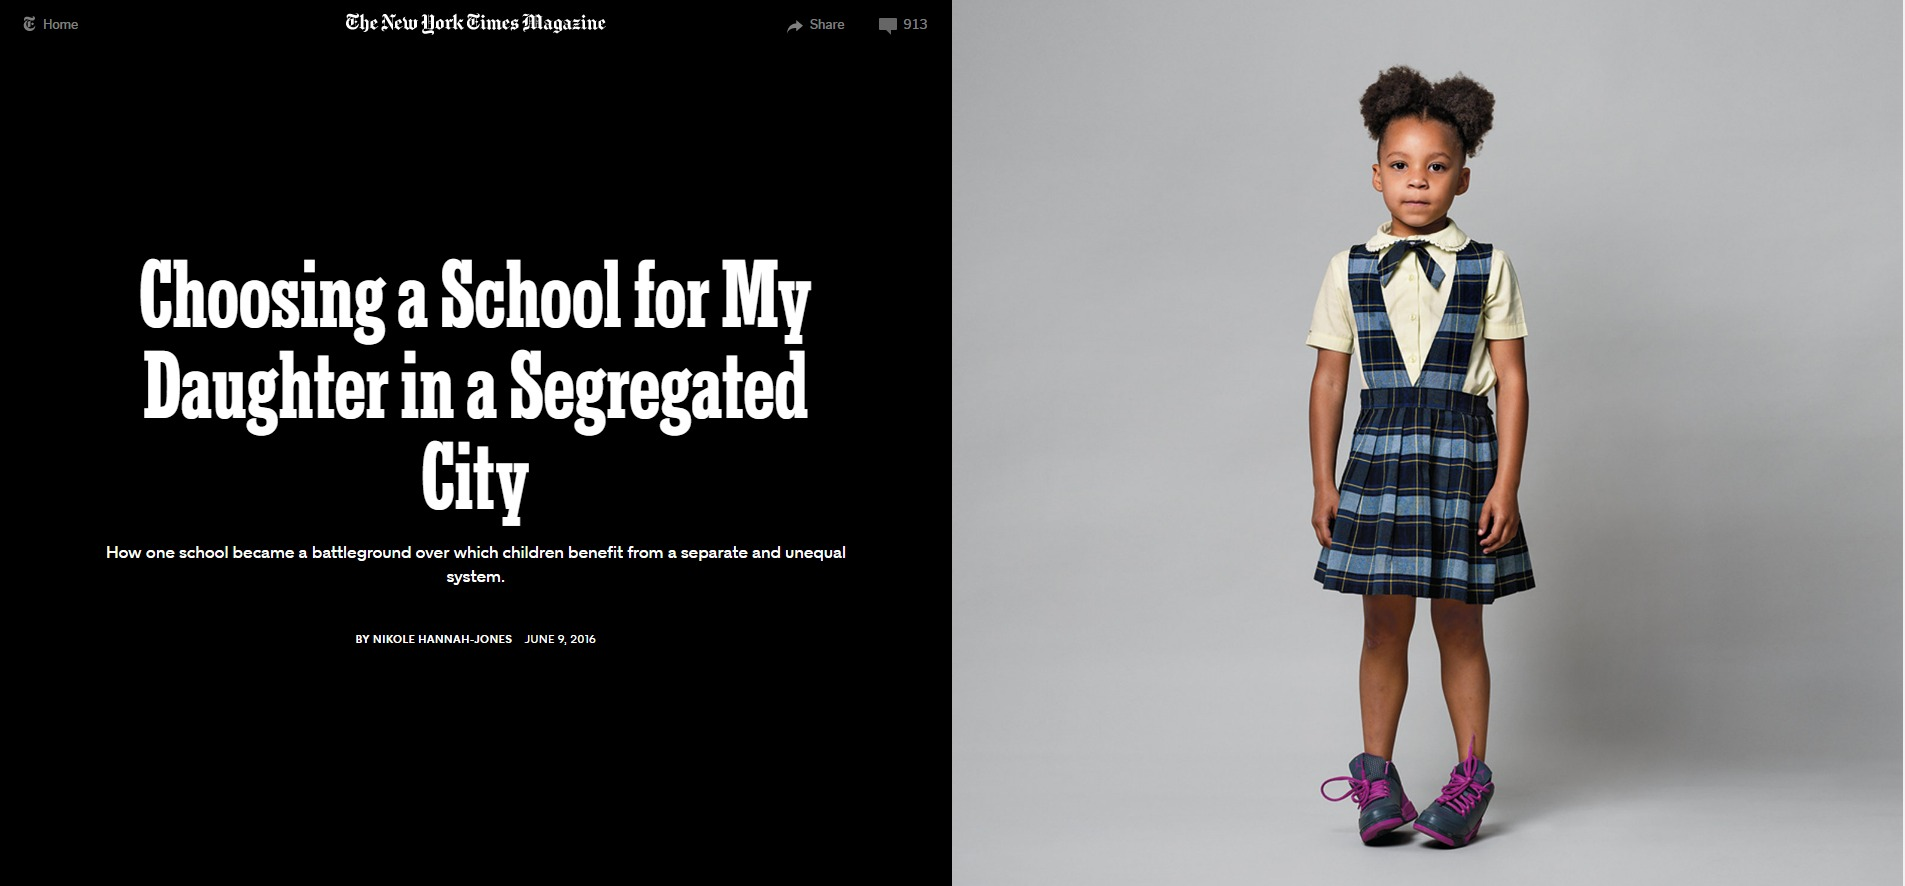 choosing_a_school_for_my_daughter_in_a_segregated_city___the_new_york_times